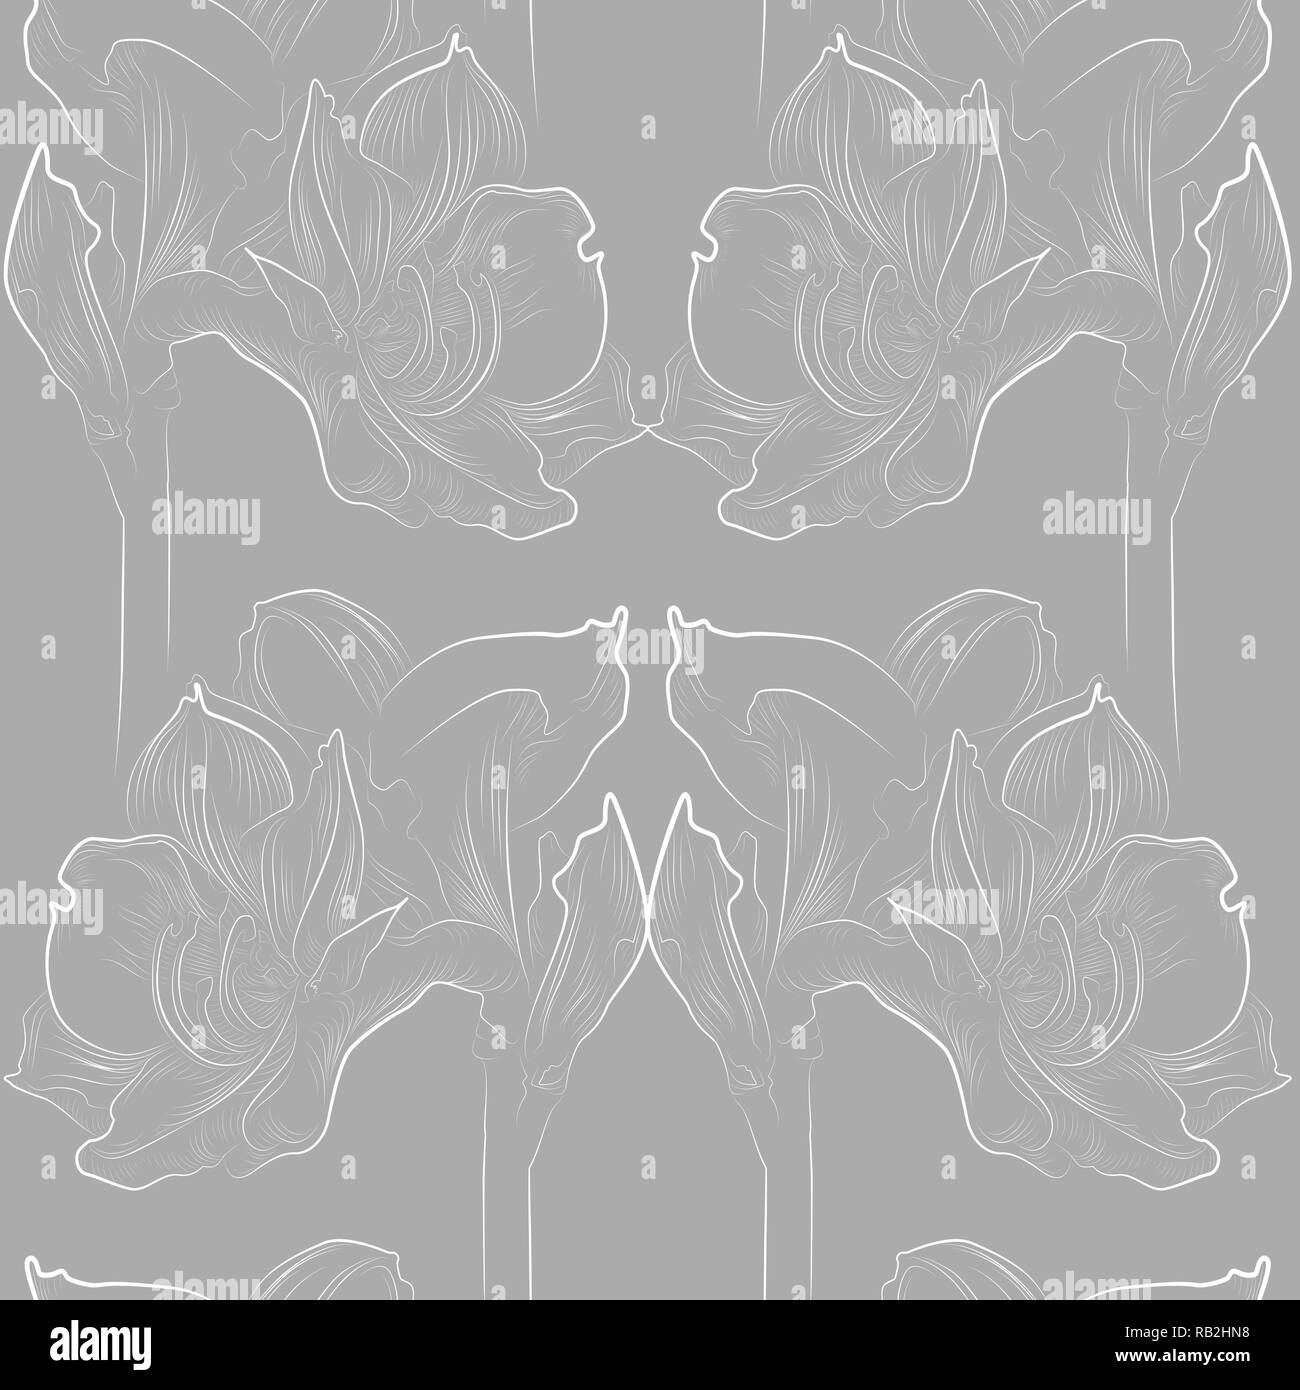 Delicate amaryllis seamless pattern in grey and white - Stock Vector